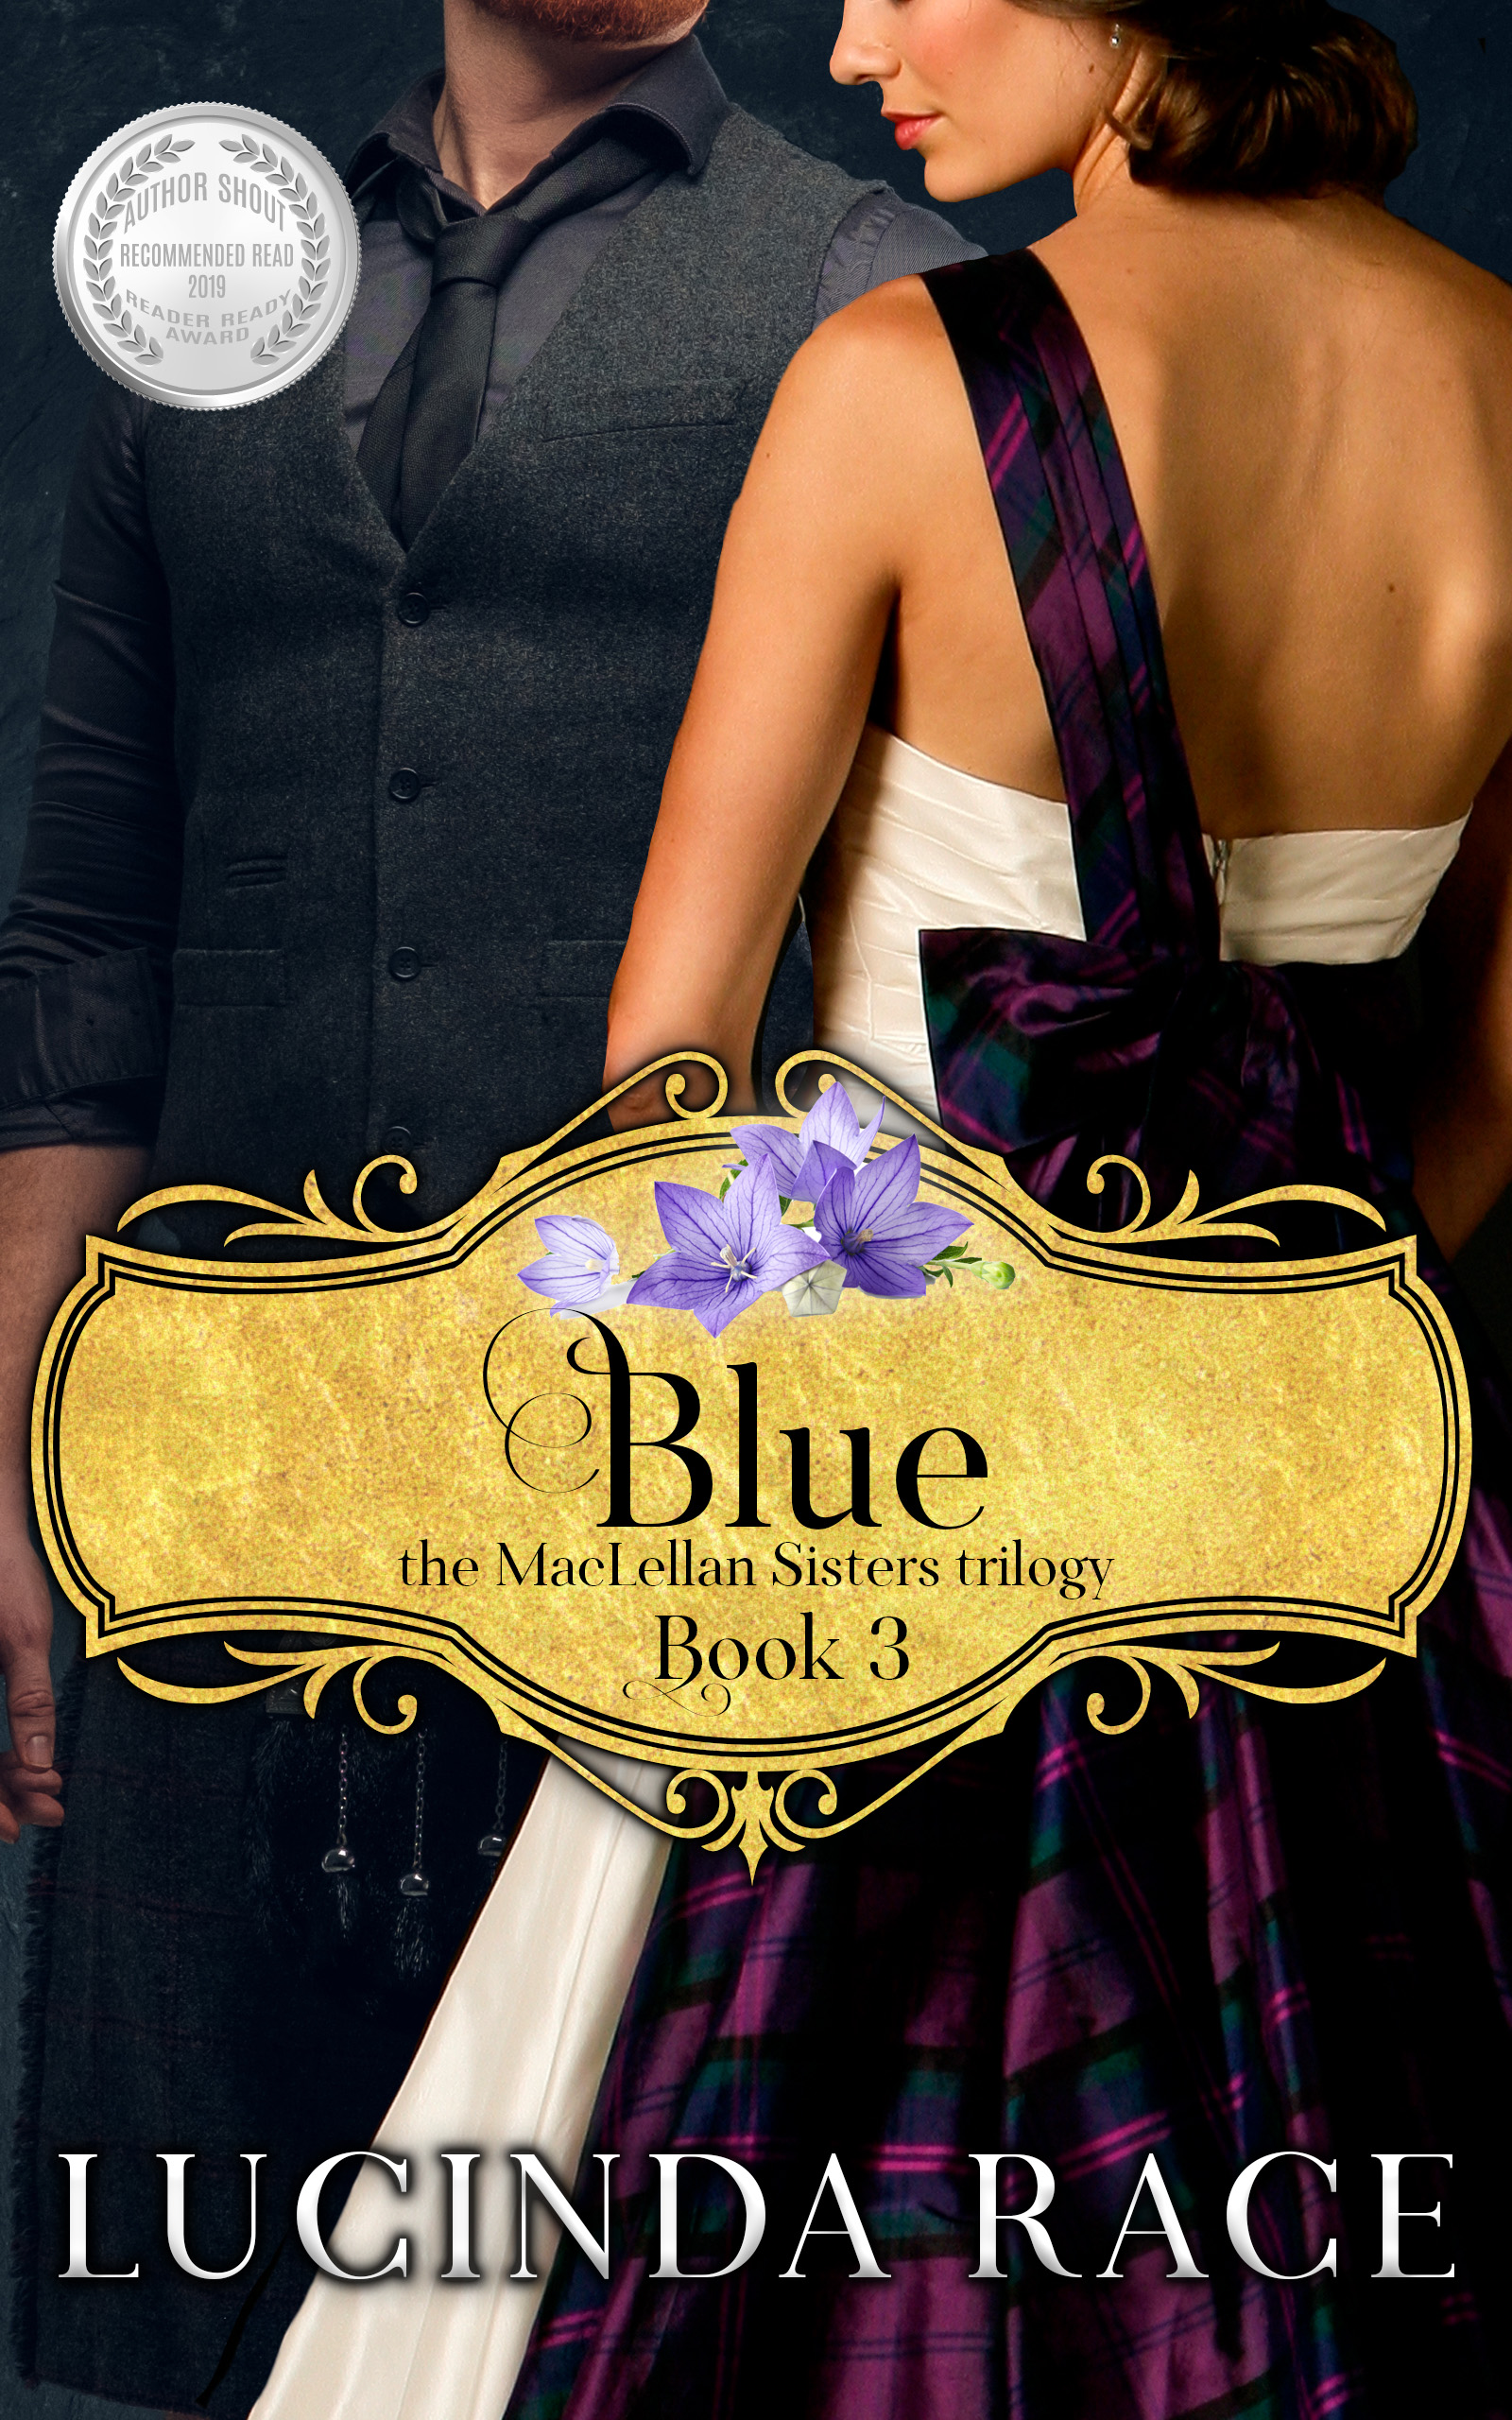 Blue ebook with award